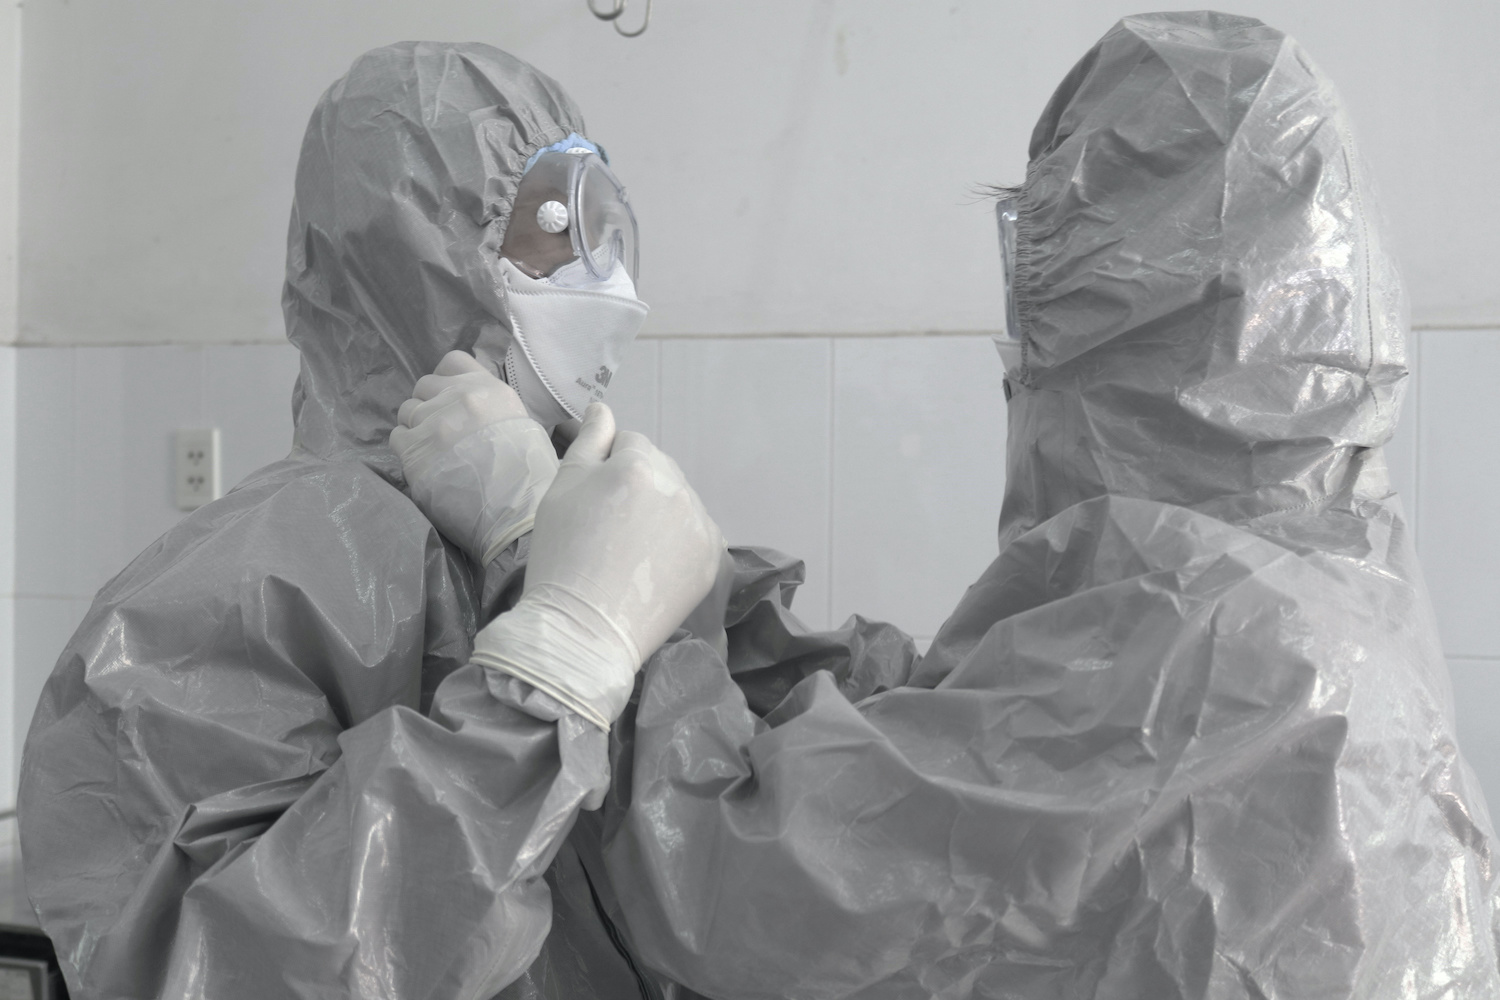 Doctors help each other put on protective suits before entering the isolation section at Cho Ray hospital in Ho Chi Minh City. Vietnam has confirmed six infections so far. (Reuters Photo)